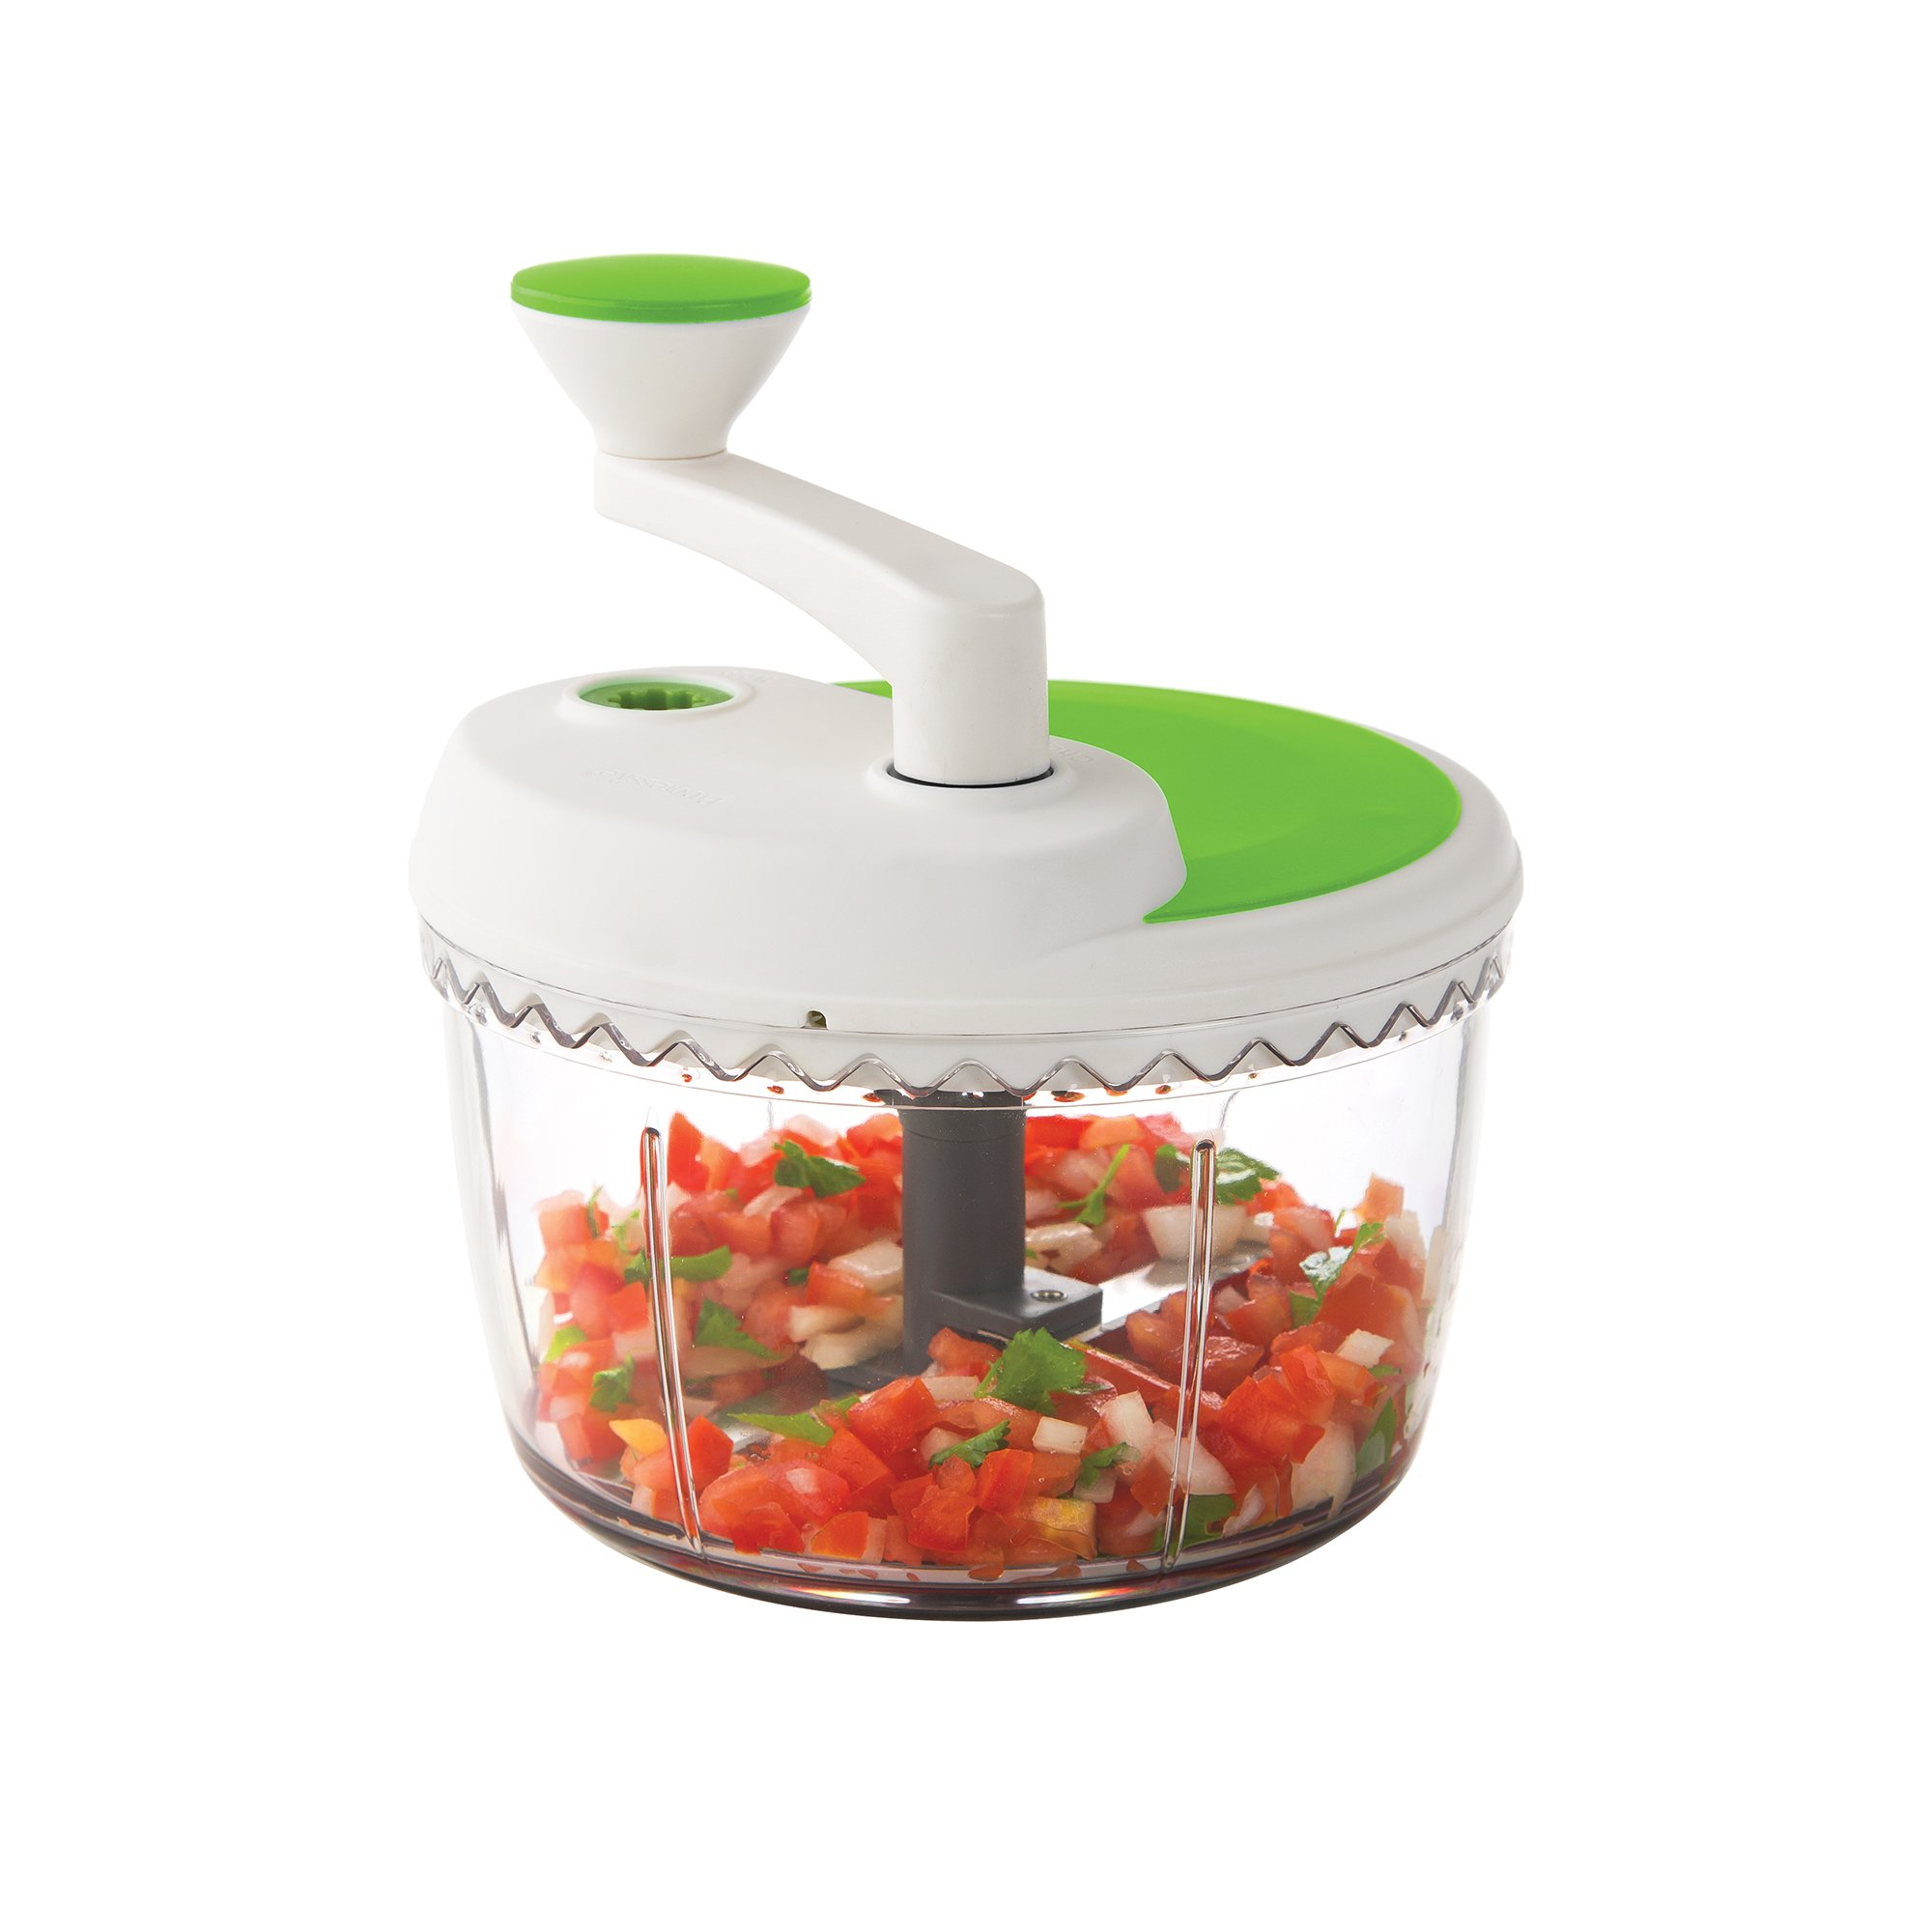 Prepworks by Progressive Dual Speed Chop & Whip, Two Speed Settings, Non-Skid Base, Whip Cream, Dressings, Mincing Onions, Salsa, Mixer, Vegetables, Coleslaw by Progressive International (Image #8)